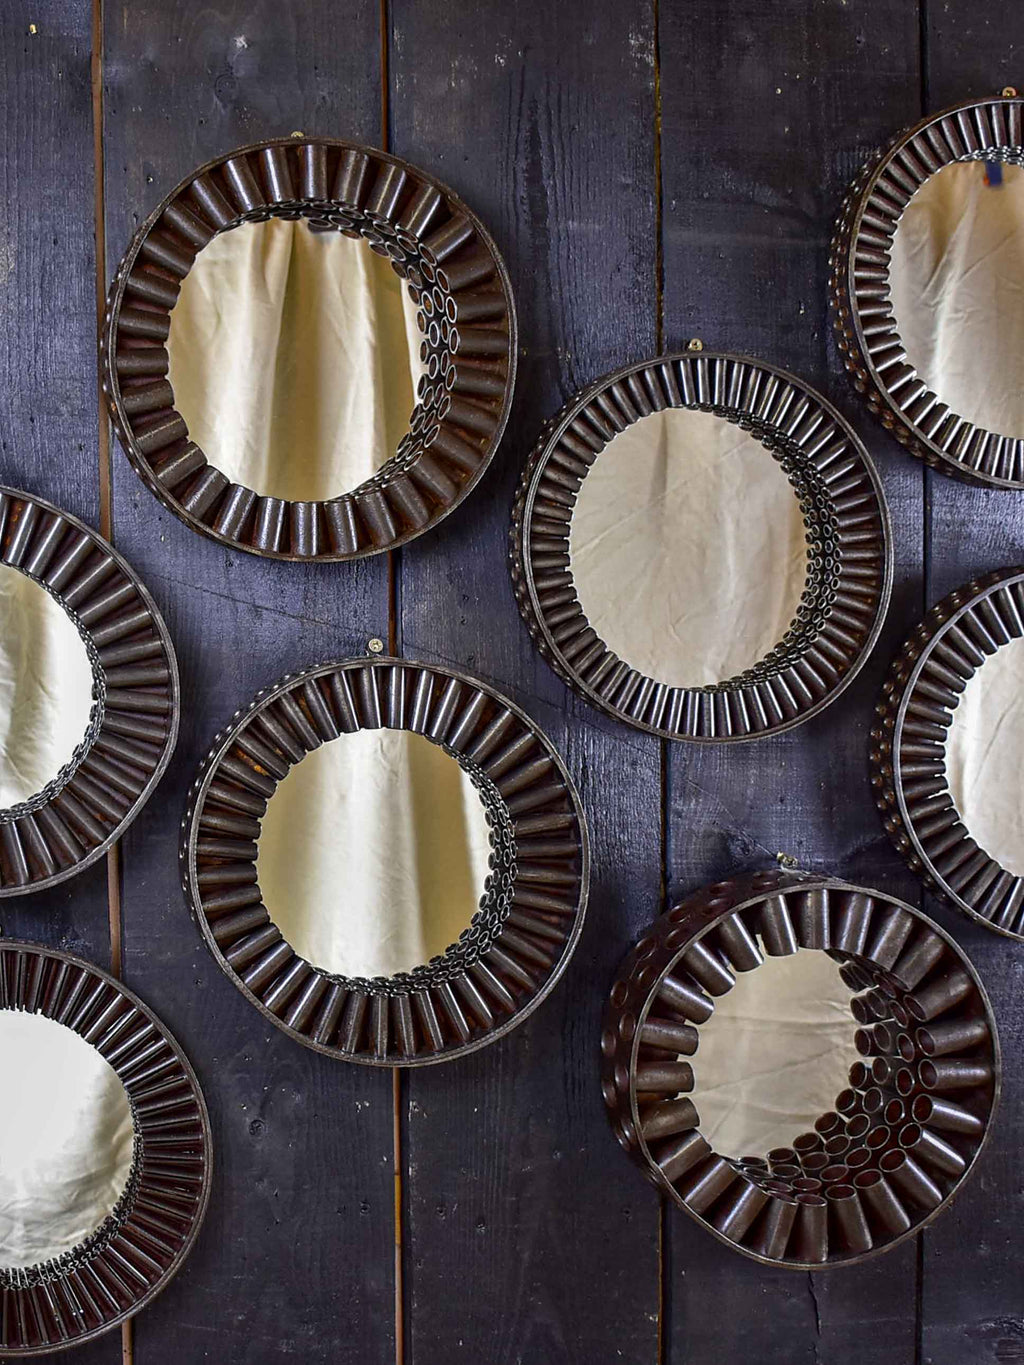 Round mirrors made from salvaged industrial materials